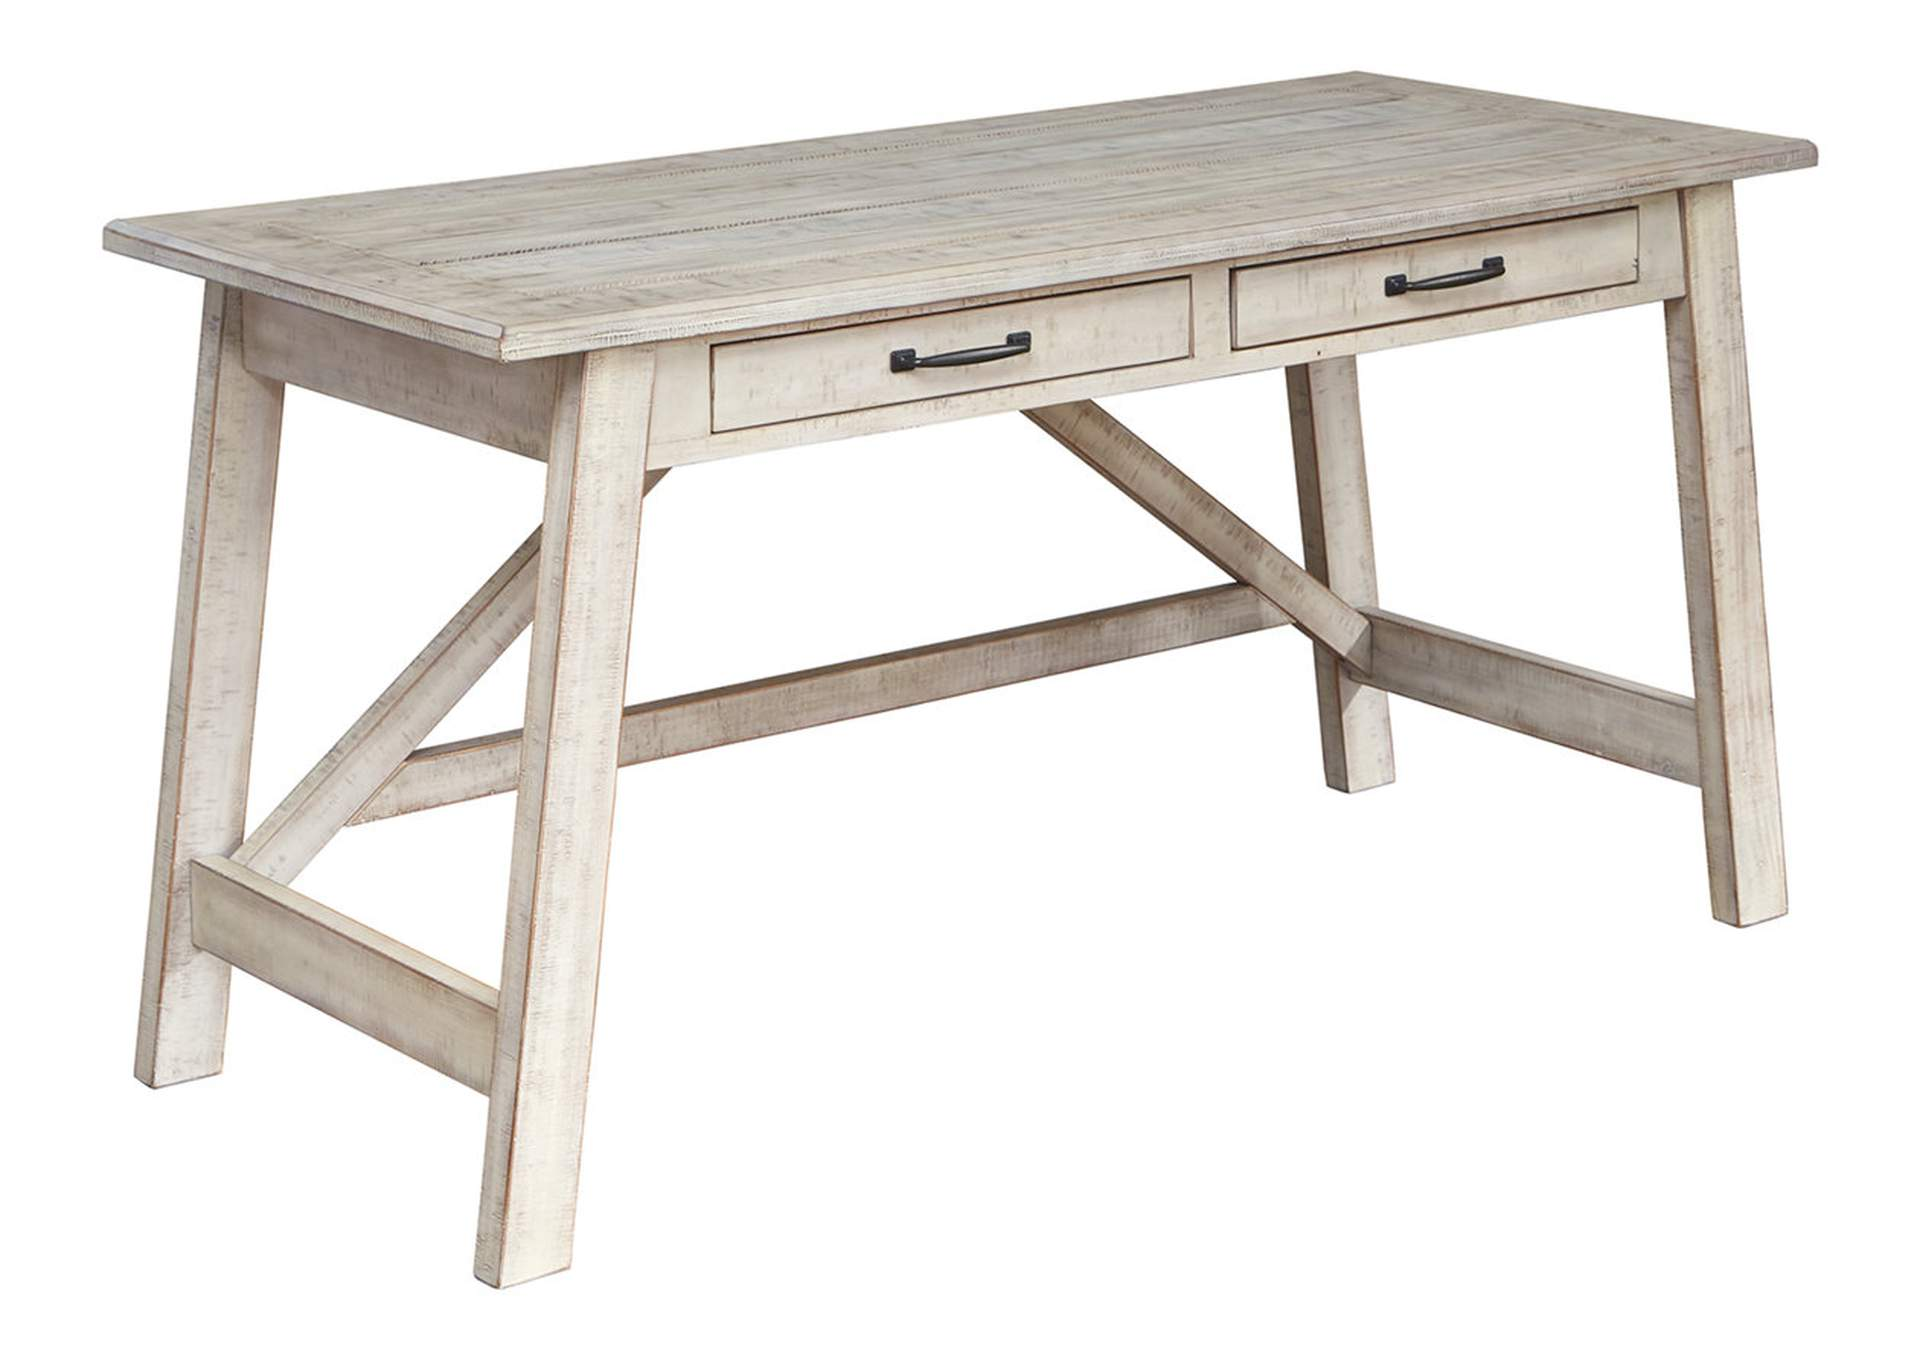 Image of: Carynhurst Whitewash 60 Office Desk Best Buy Furniture And Mattress